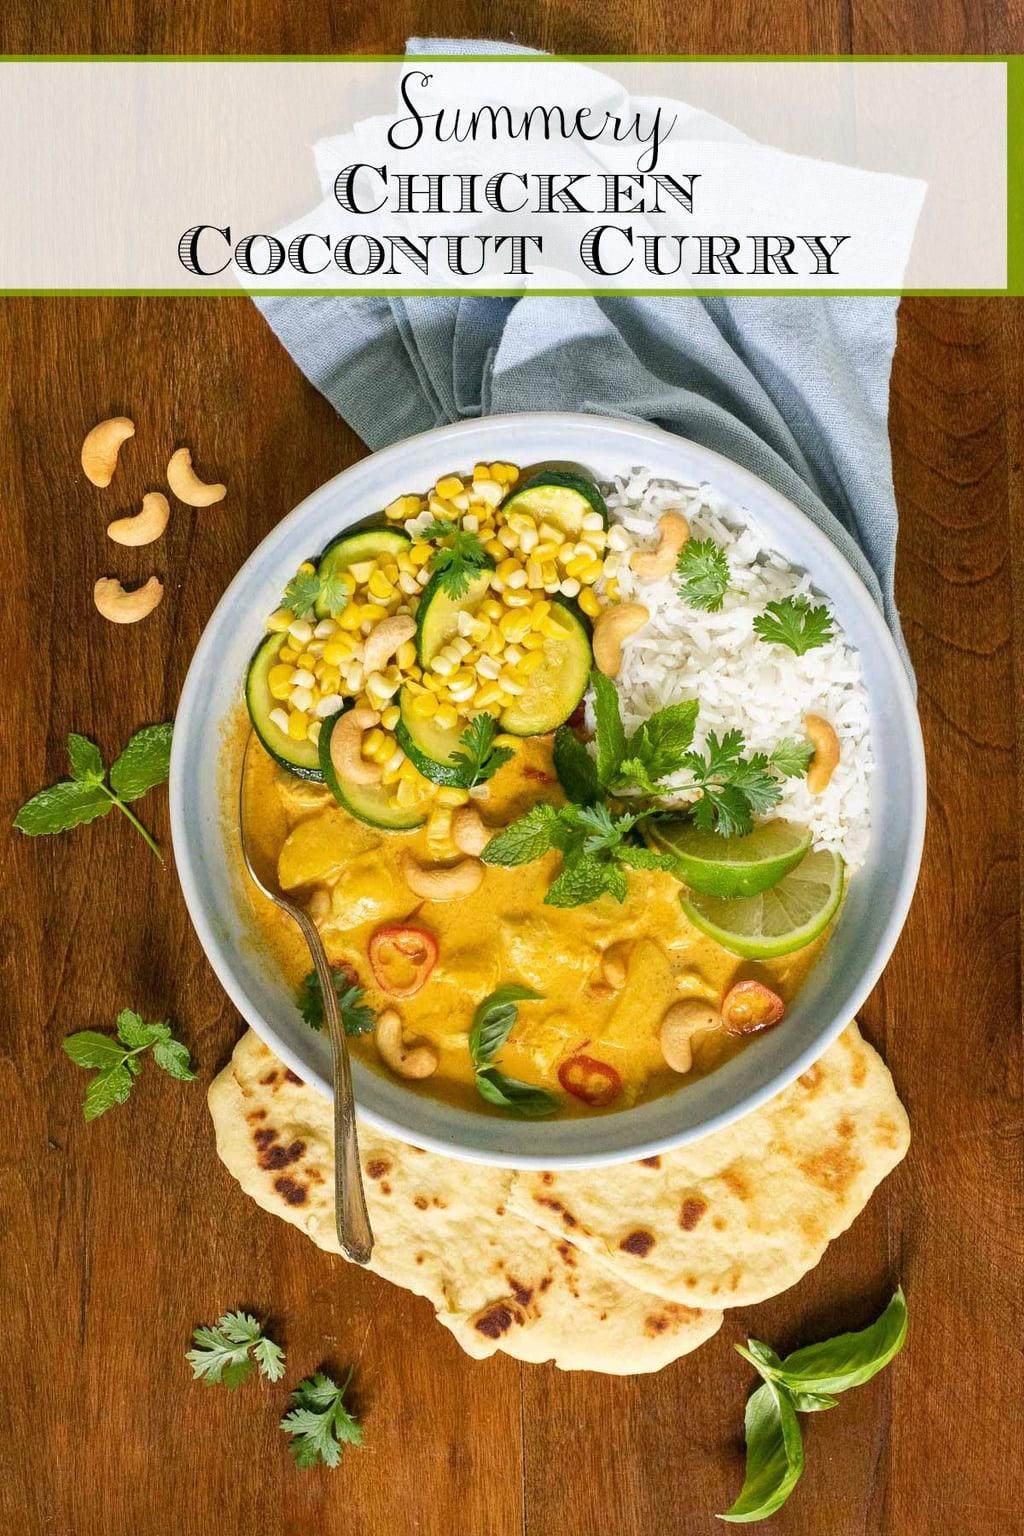 Summery Chicken Coconut Curry